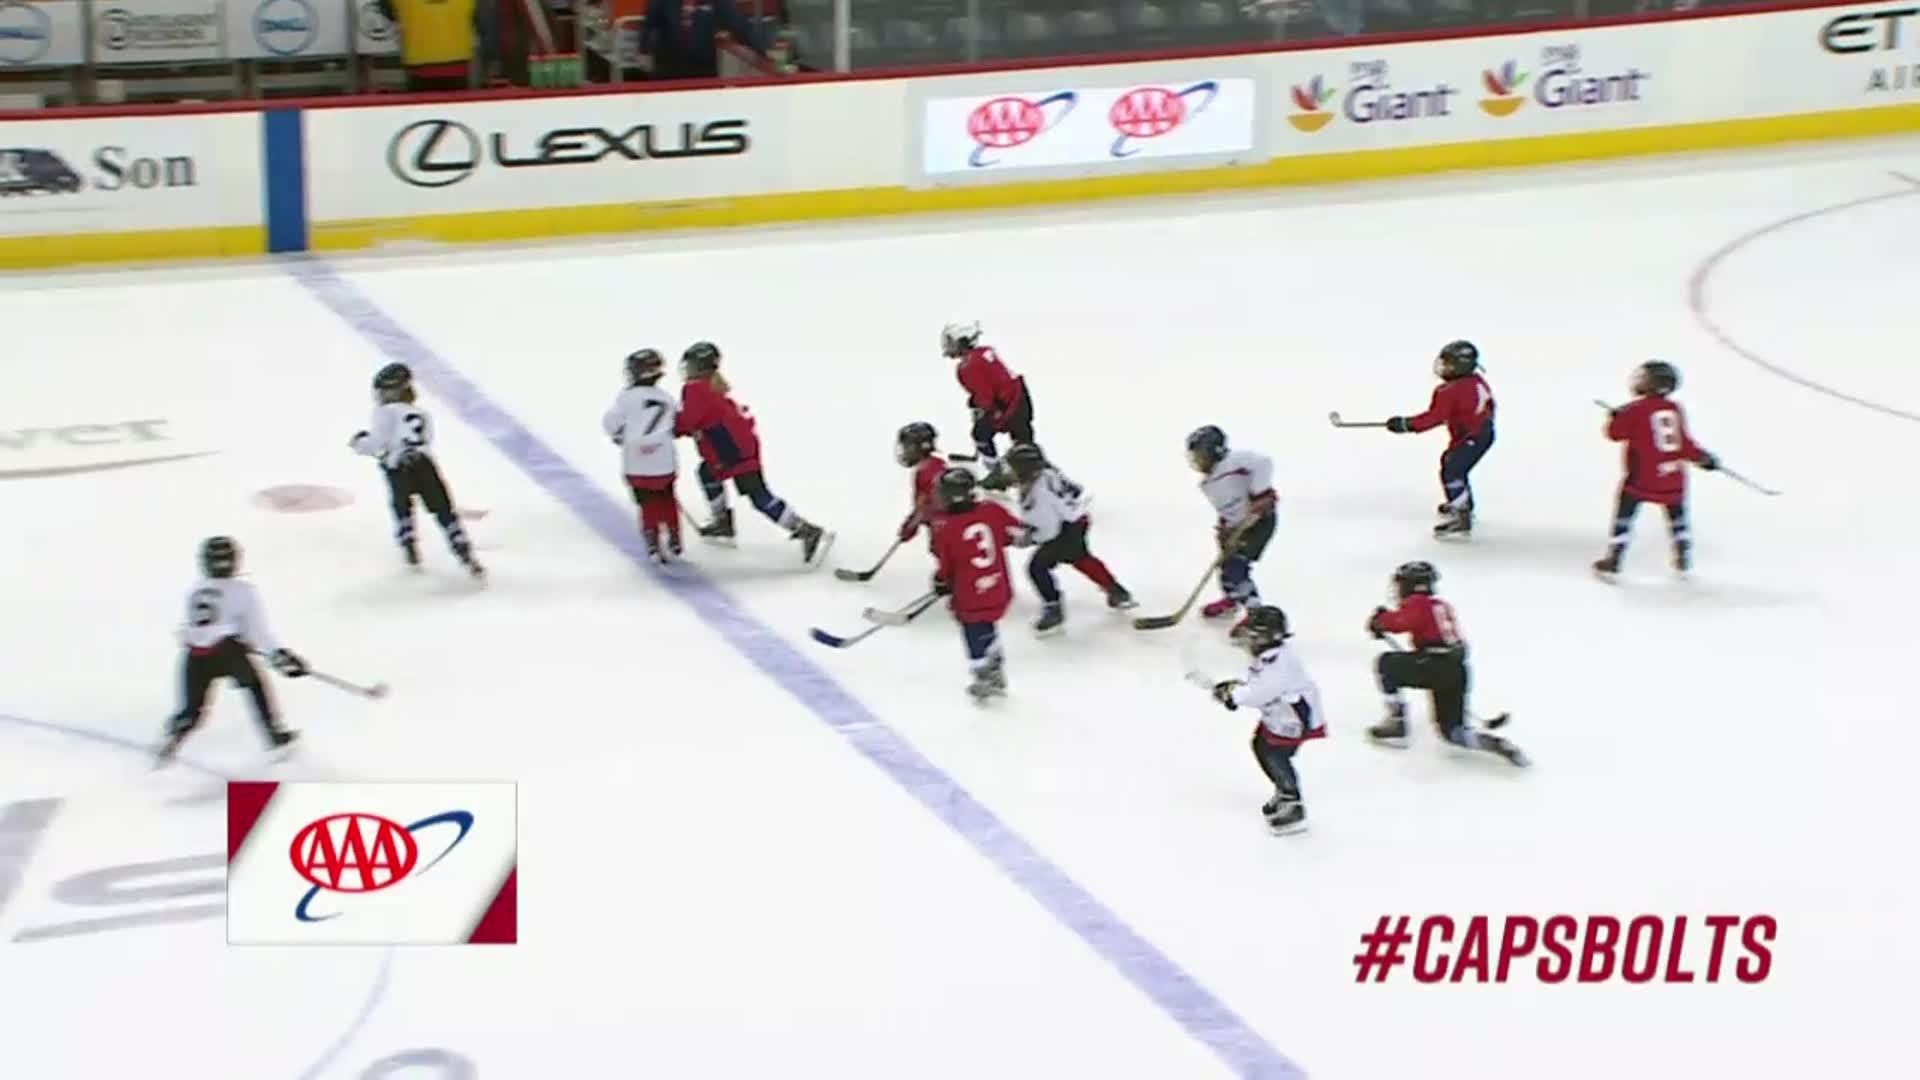 #CapsBolts Mites on Ice 11/24/17